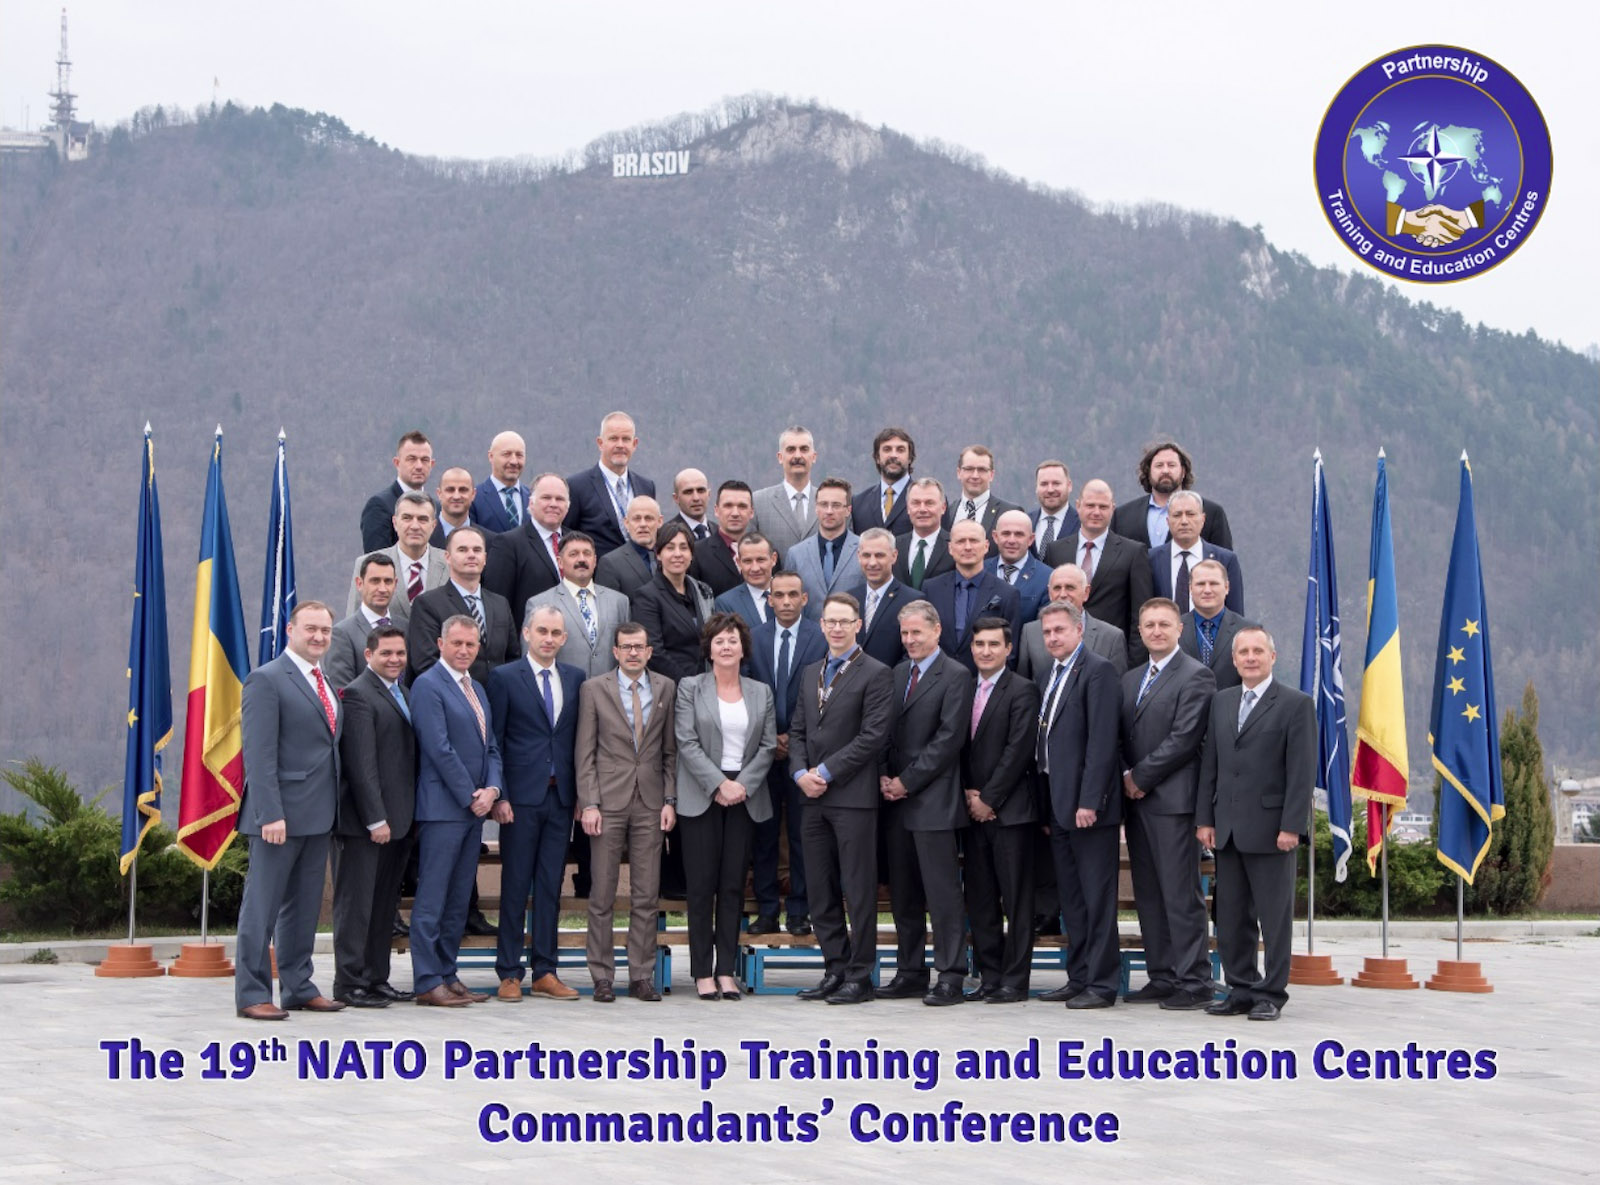 PTEC Commandants Conference 2019 Concludes in Brasov